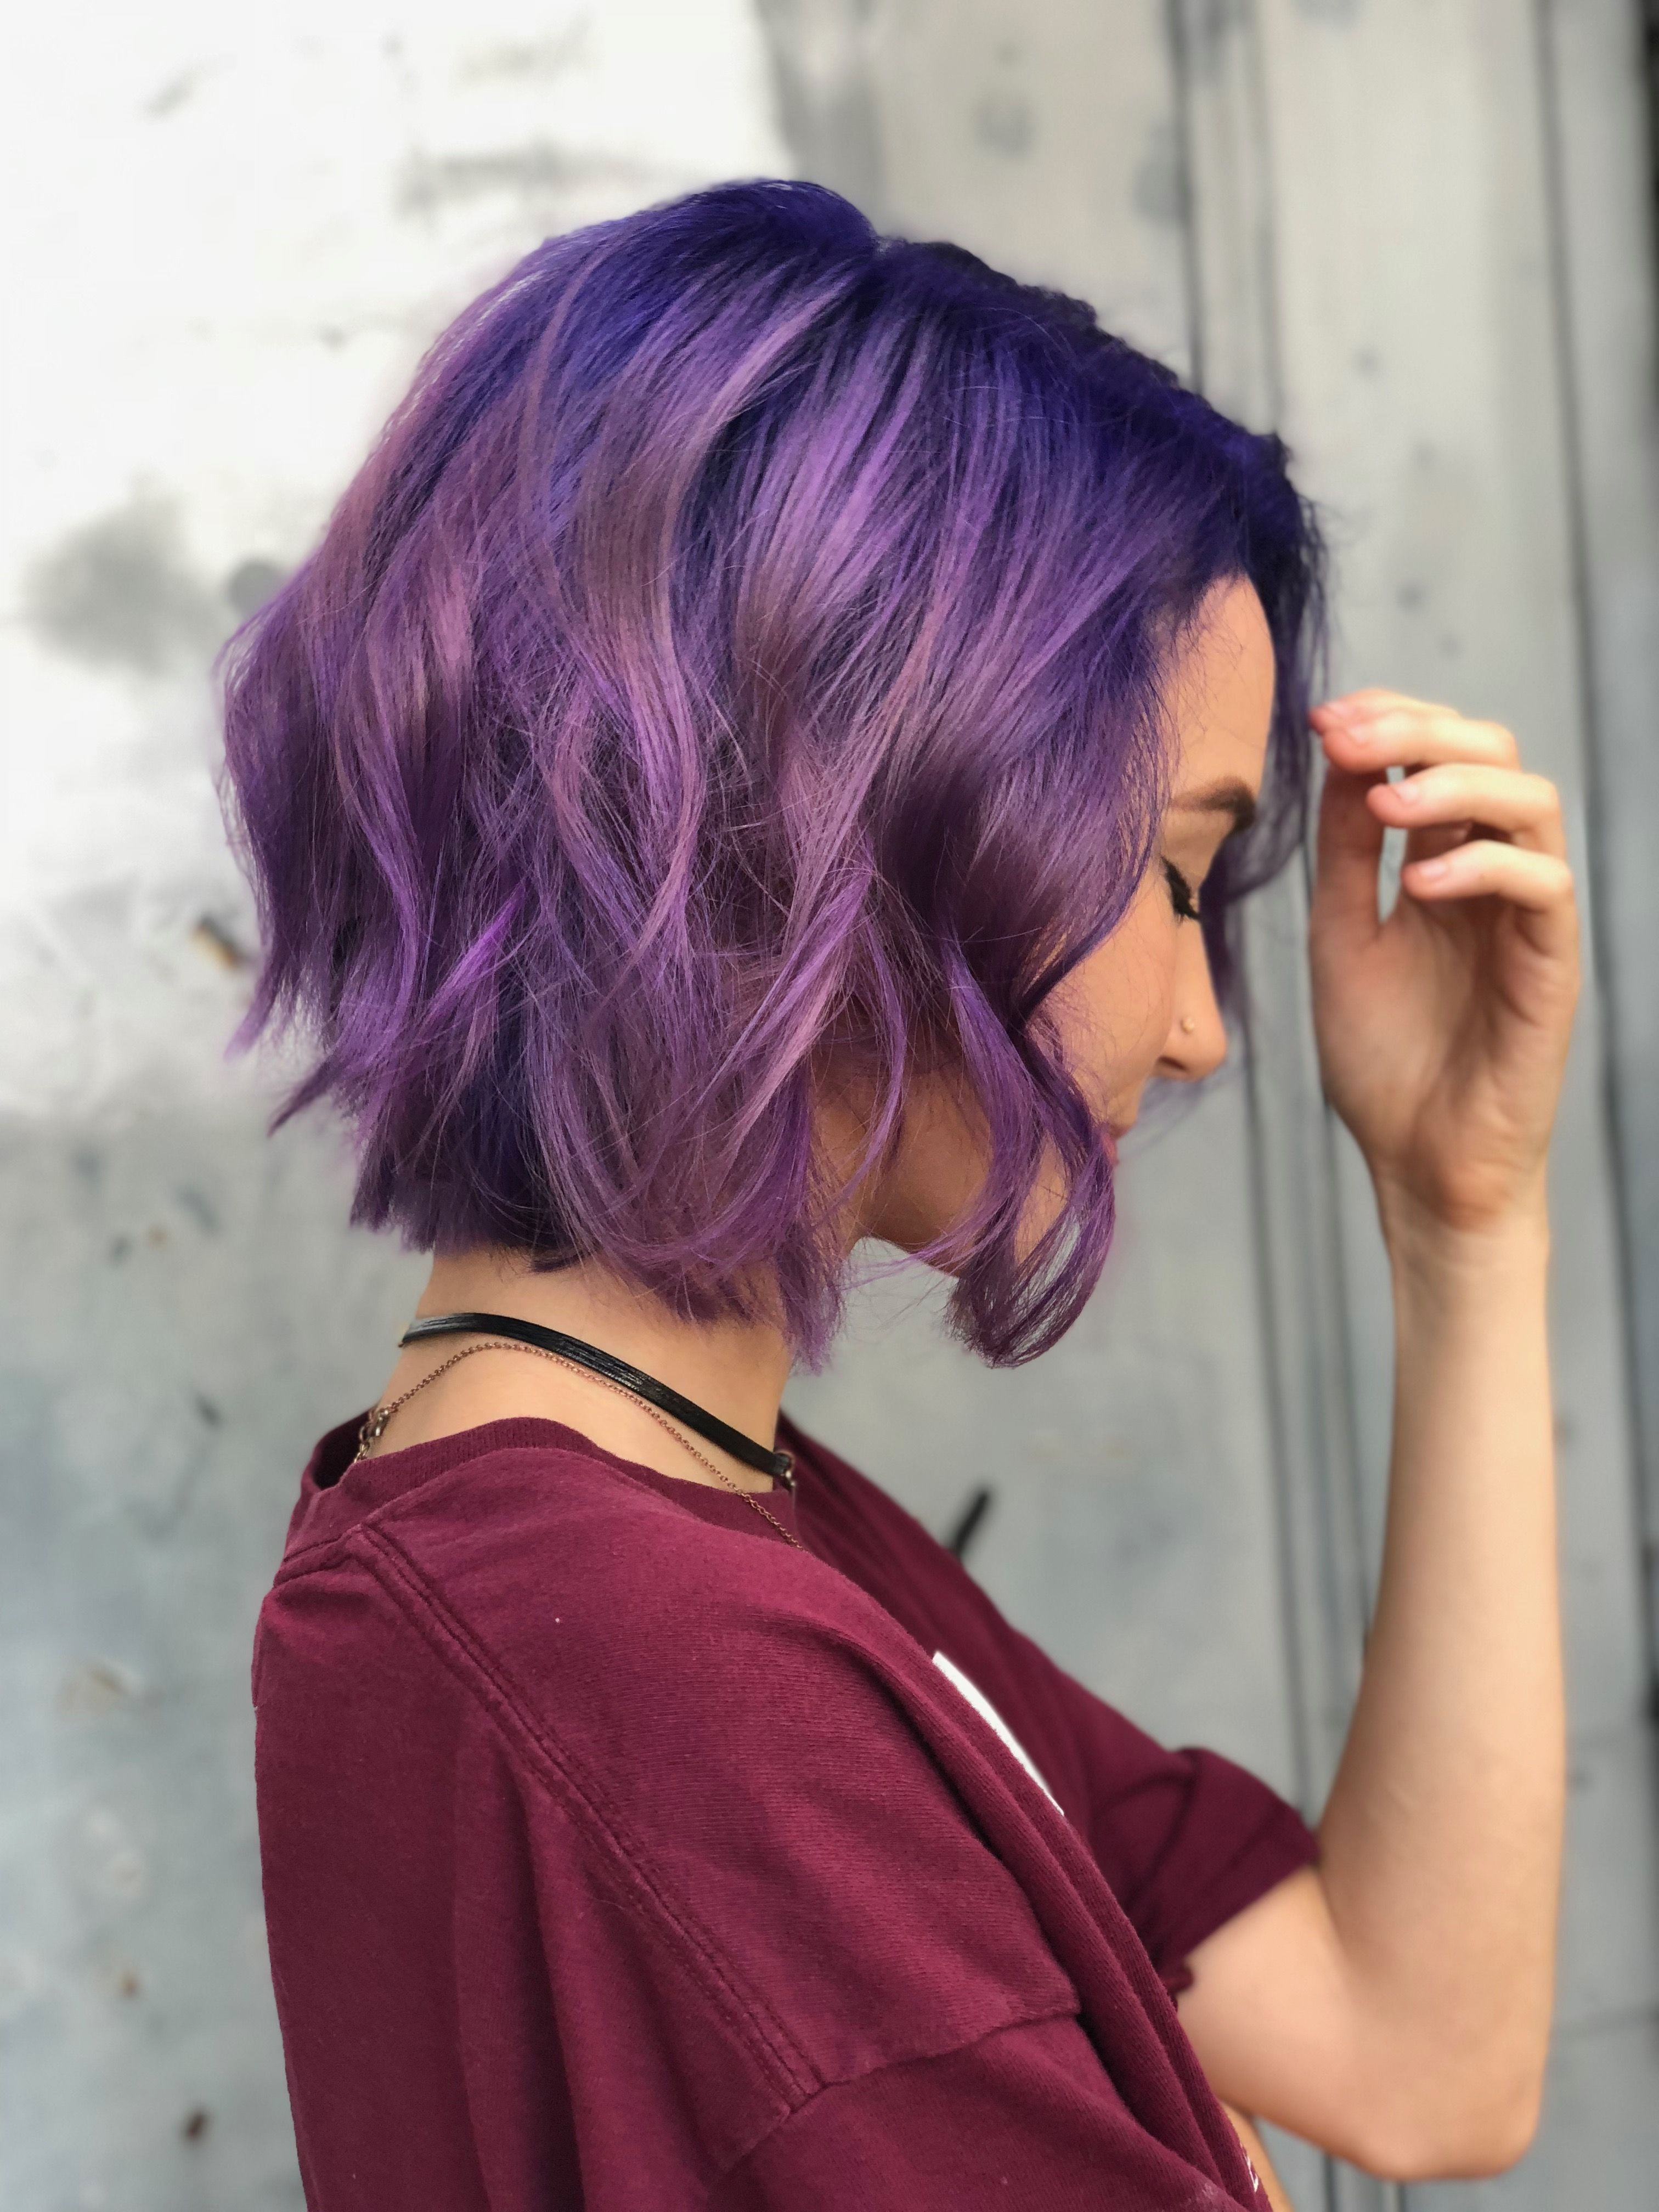 45 Majestic Purple Hair Style Ideas Page 11 Of 12 In 2020 Purple Ombre Hair Short Purple Hair Short Dyed Hair